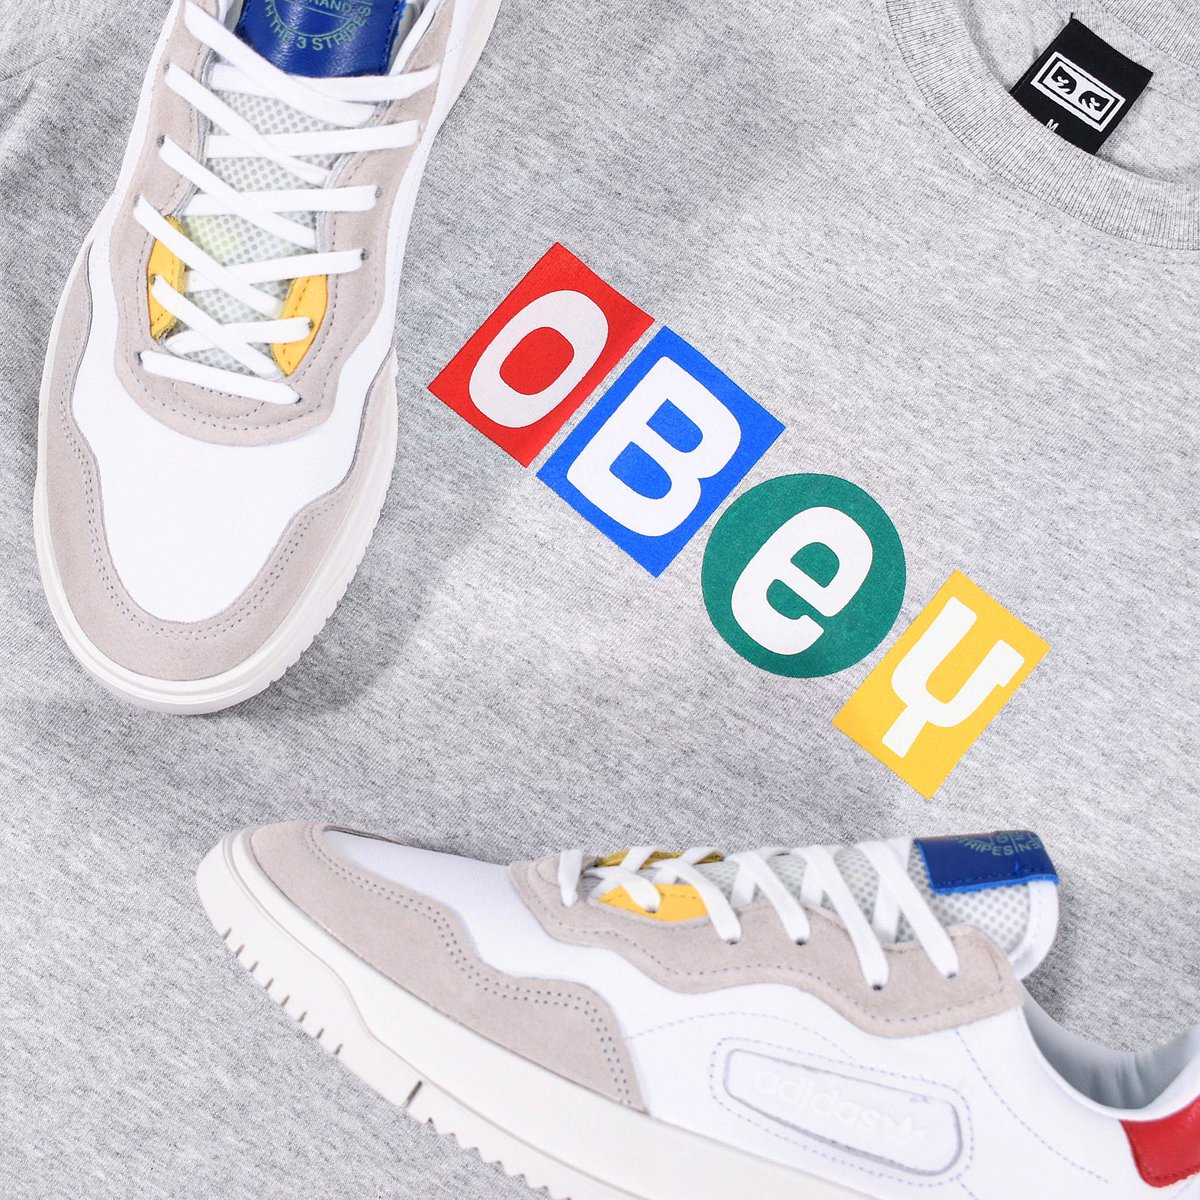 Attic Clothing On Twitter It A All About The Primary Colours With This Subtle Combo From Last Week The Adidasoriginals Sc Premiere And Obeyclothing Big Shot Tee Both Of Which Currently Have 20